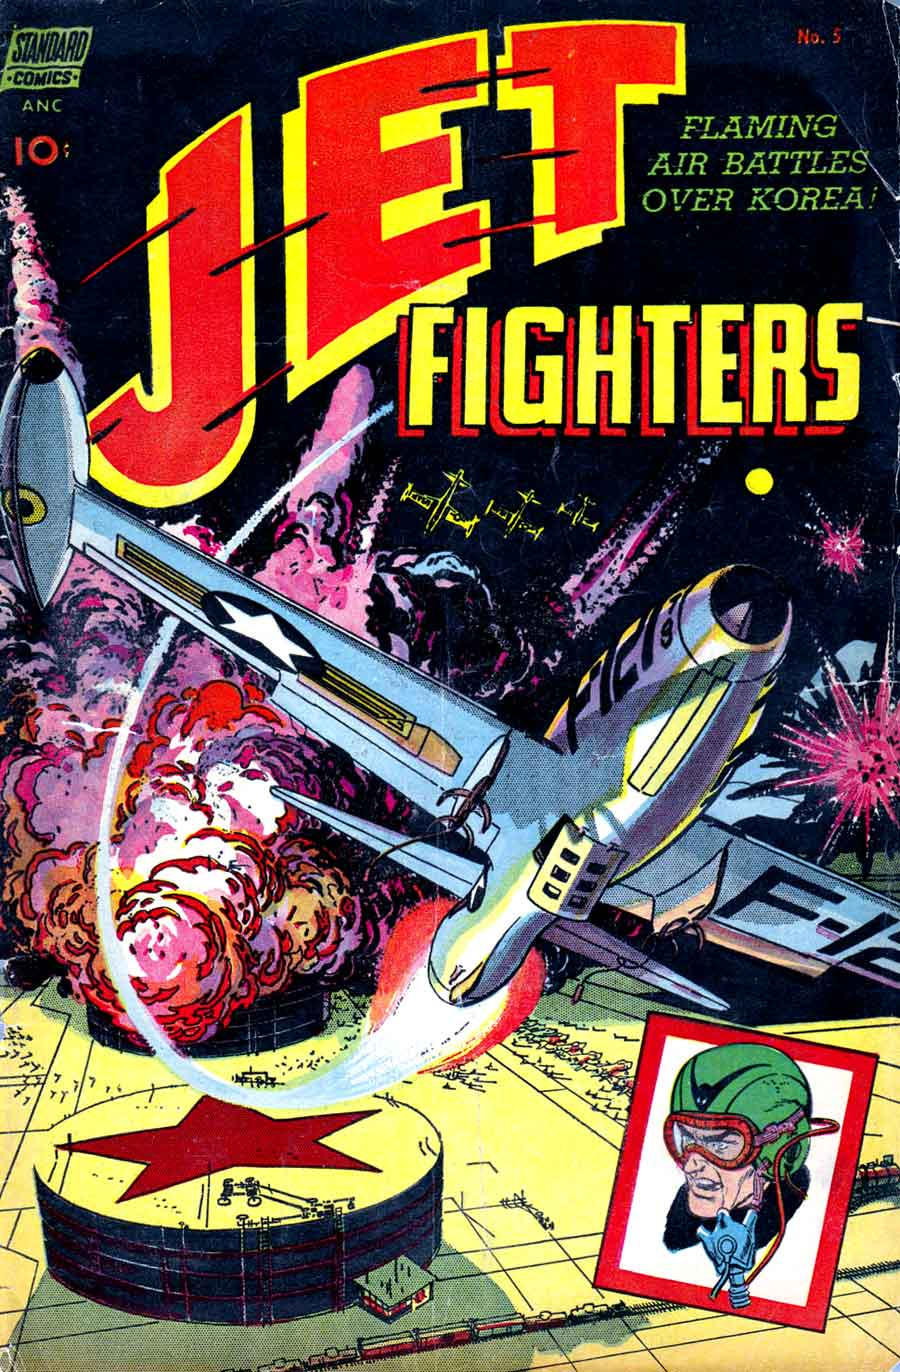 Jet Fighters v1 #5 standard war comic book cover art by Alex Toth